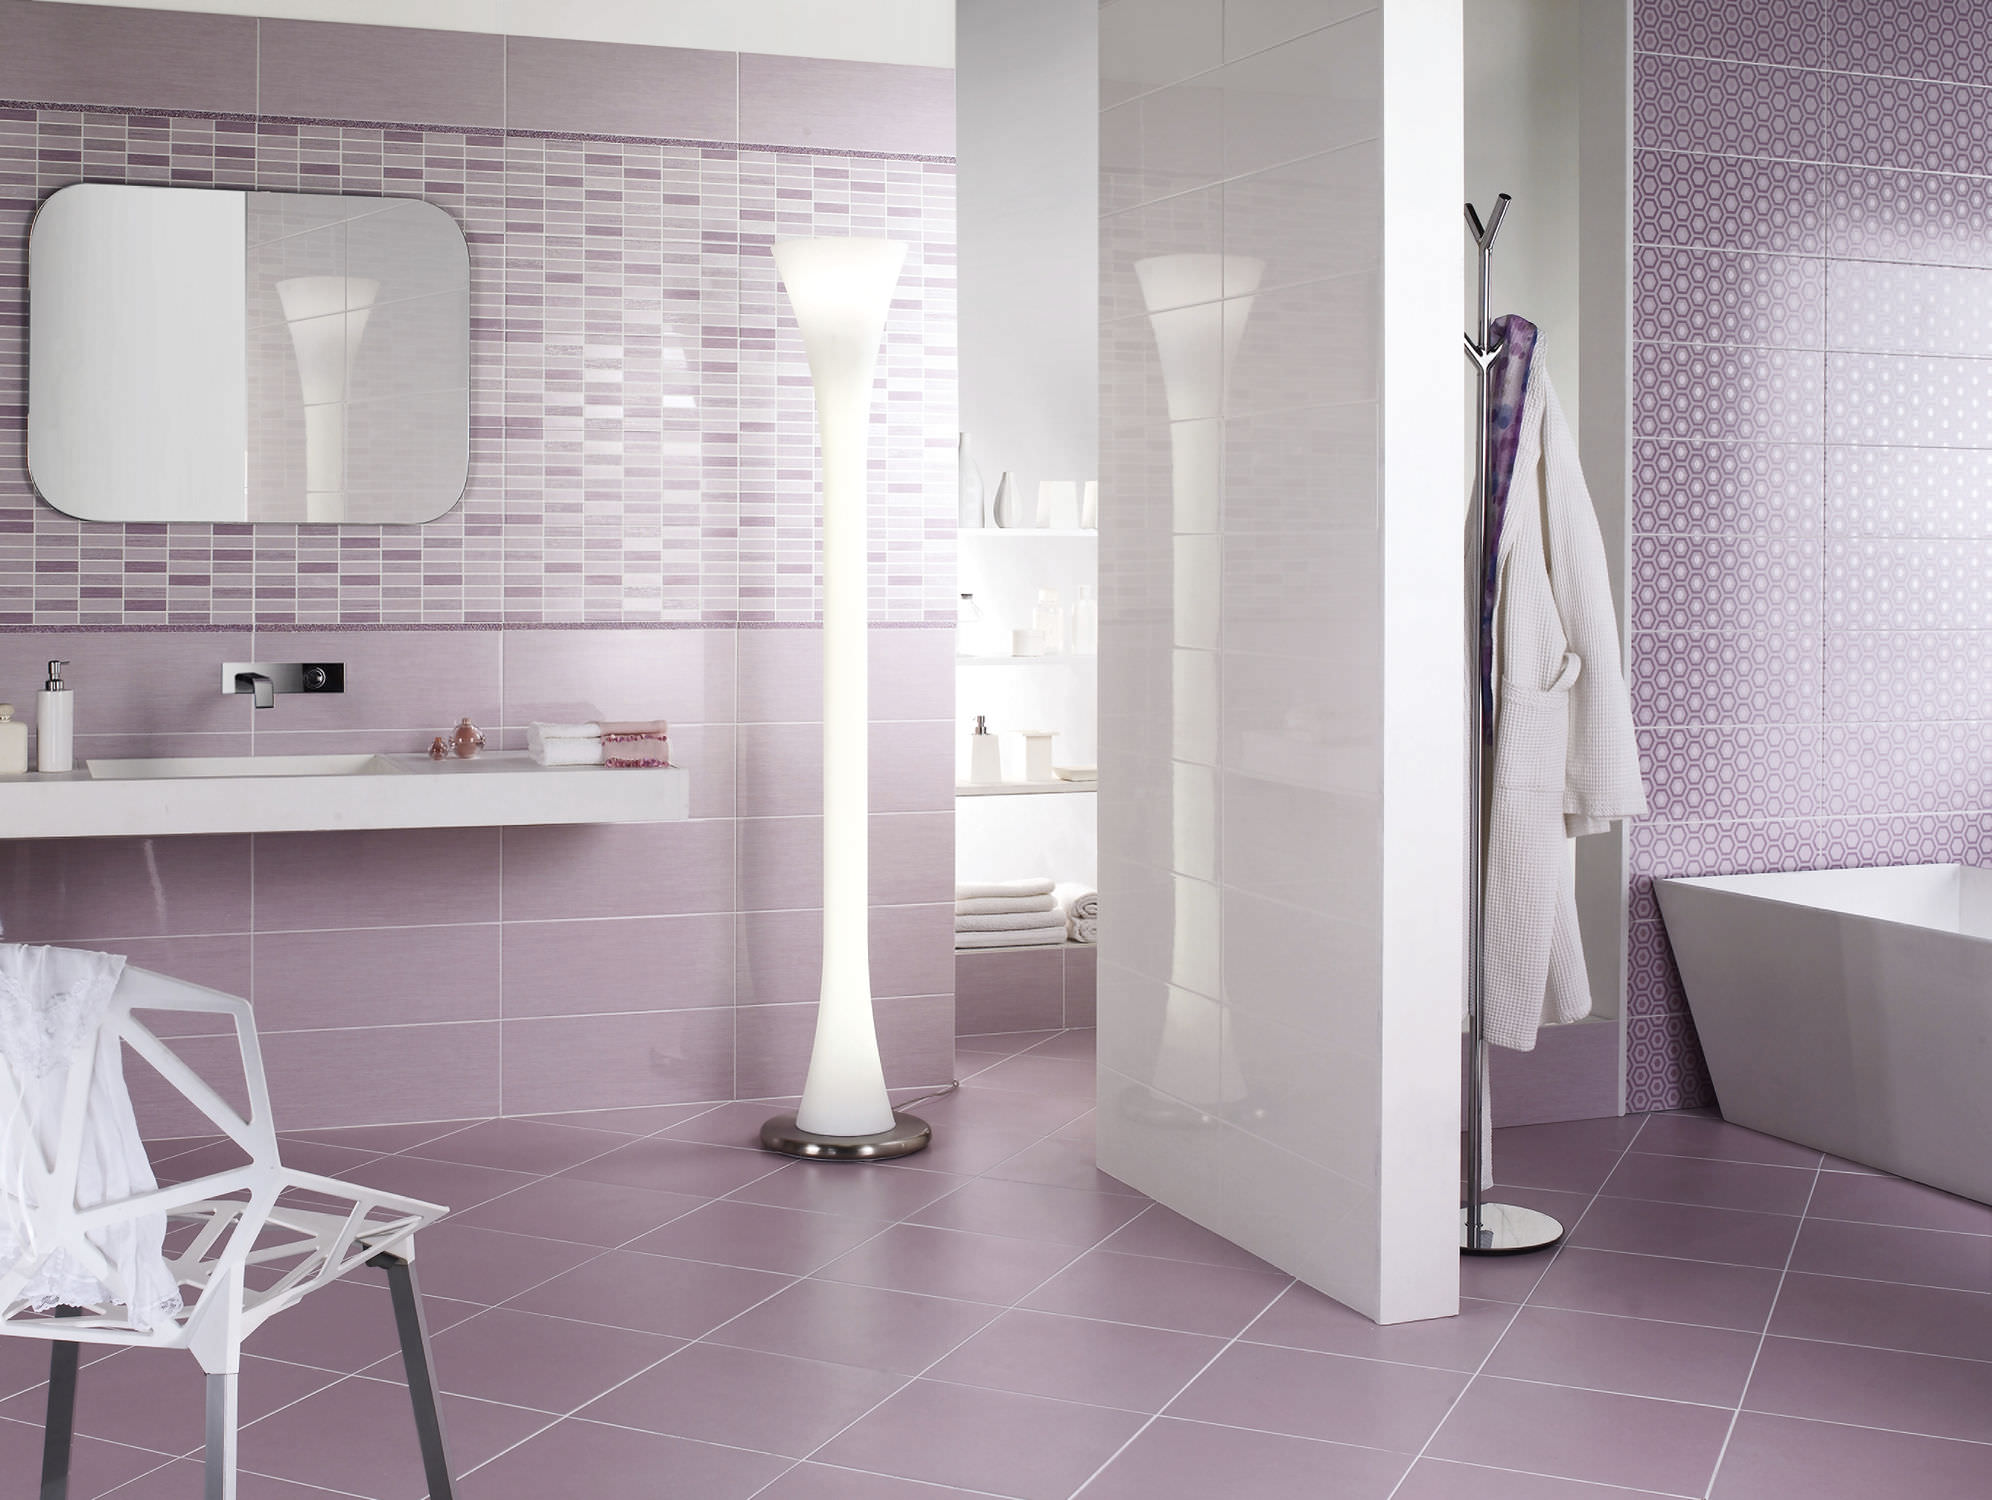 24 Nice Ideas How To Use Ceramic Tile For Bathroom Walls - Black-and-white-bathroom-york-by-novabell